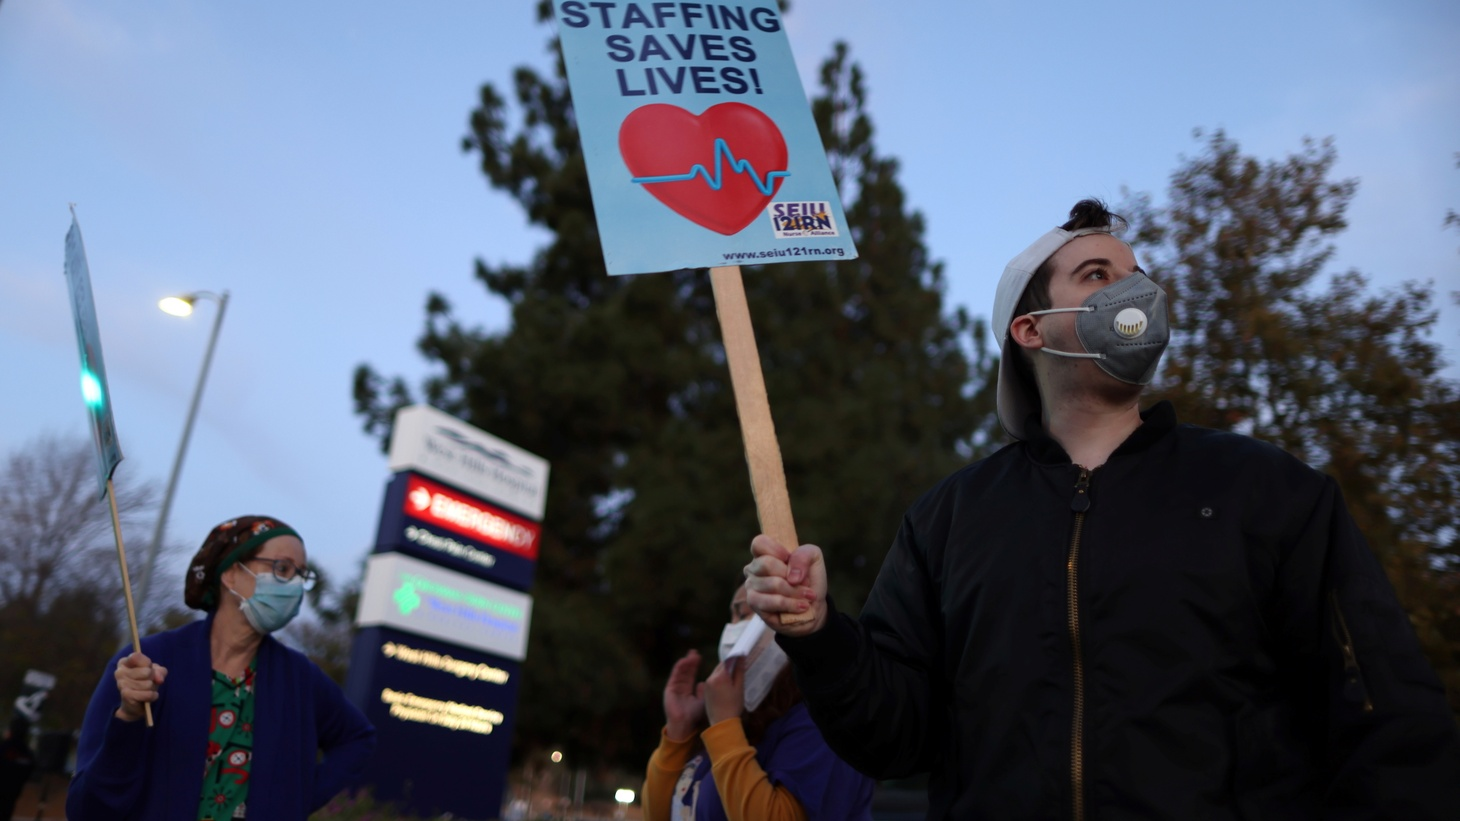 People attend a protest for nurses demanding more PPE, coronavirus testing, and staff, as the outbreak of the coronavirus disease (COVID-19) continues, in West Hills, Los Angeles, California, U.S., November 30, 2020.